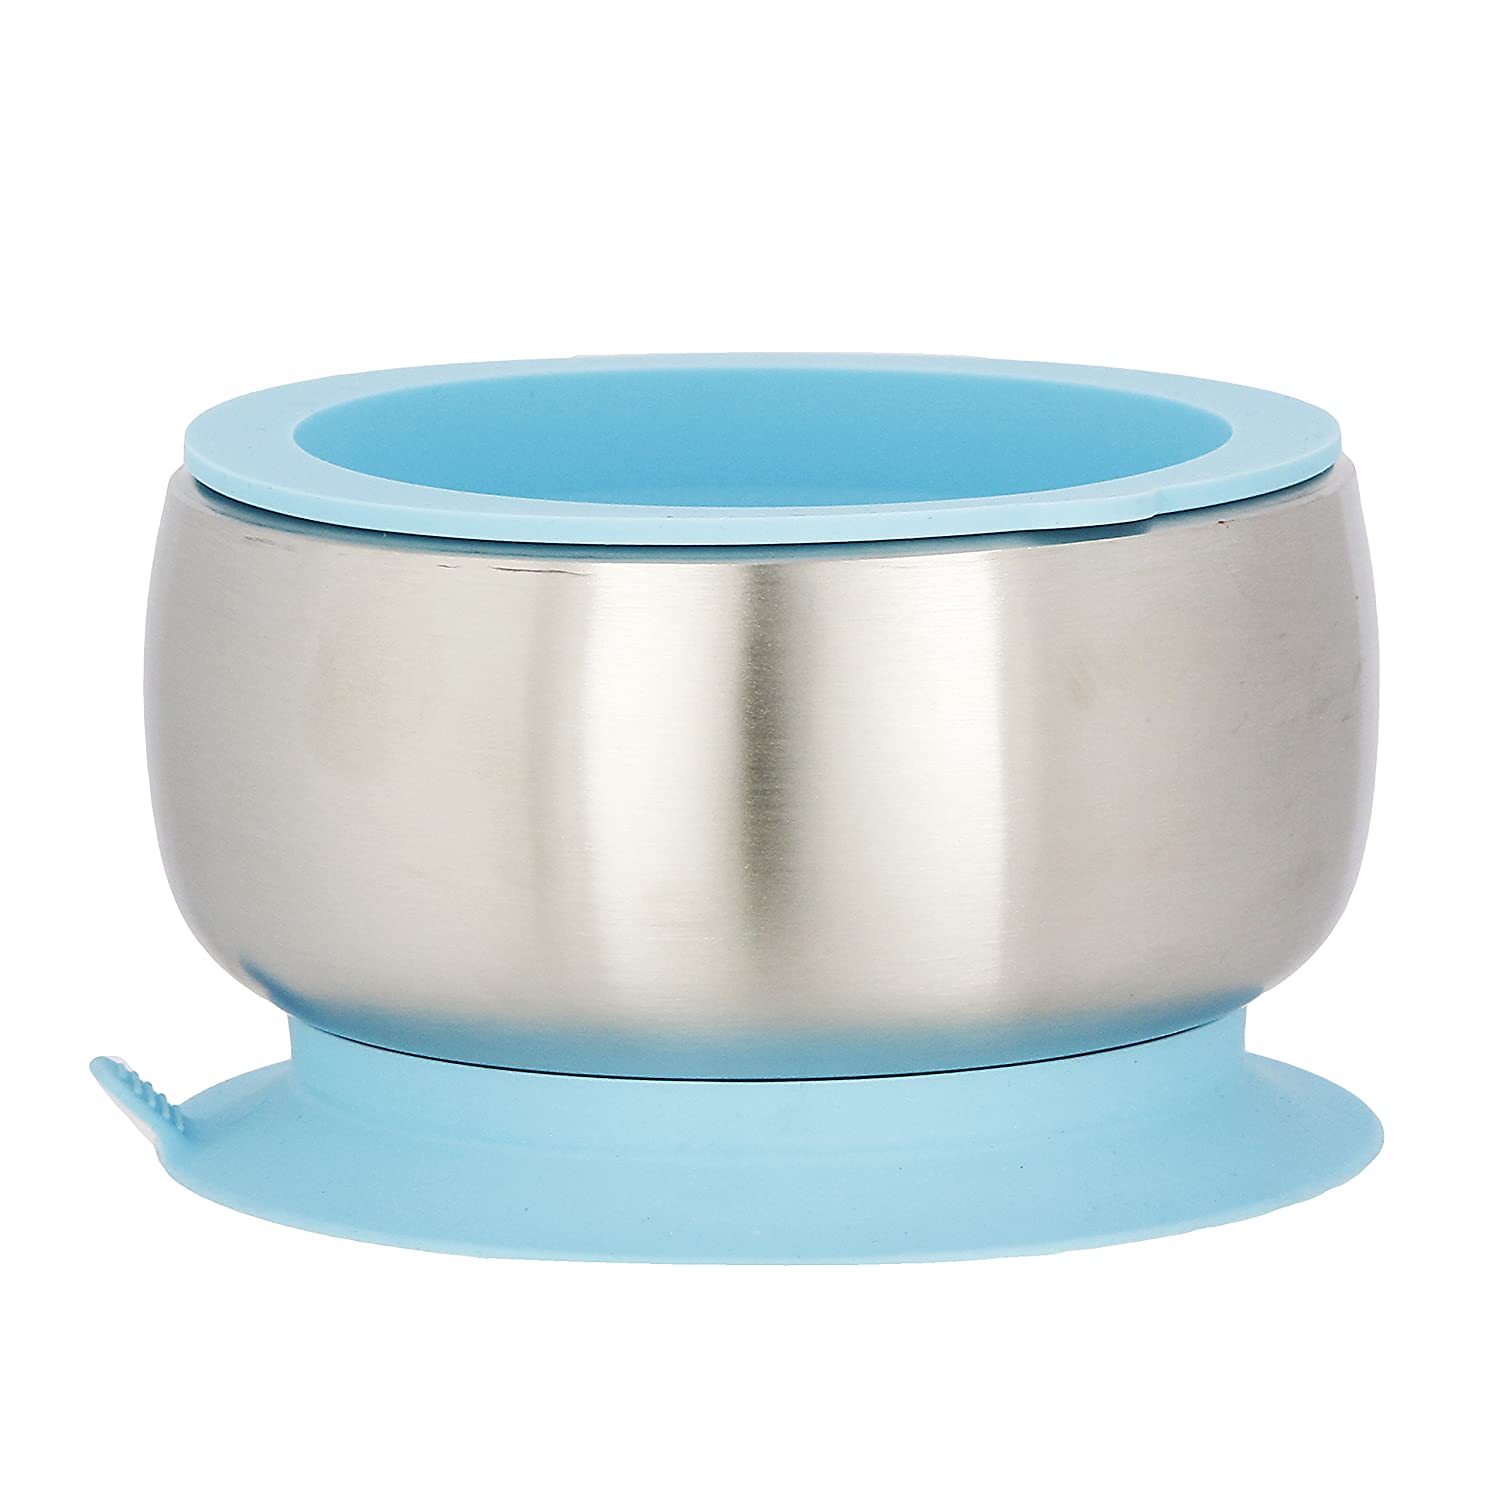 Top 9 Best Baby Bowls and Plates Reviews in 2020 6